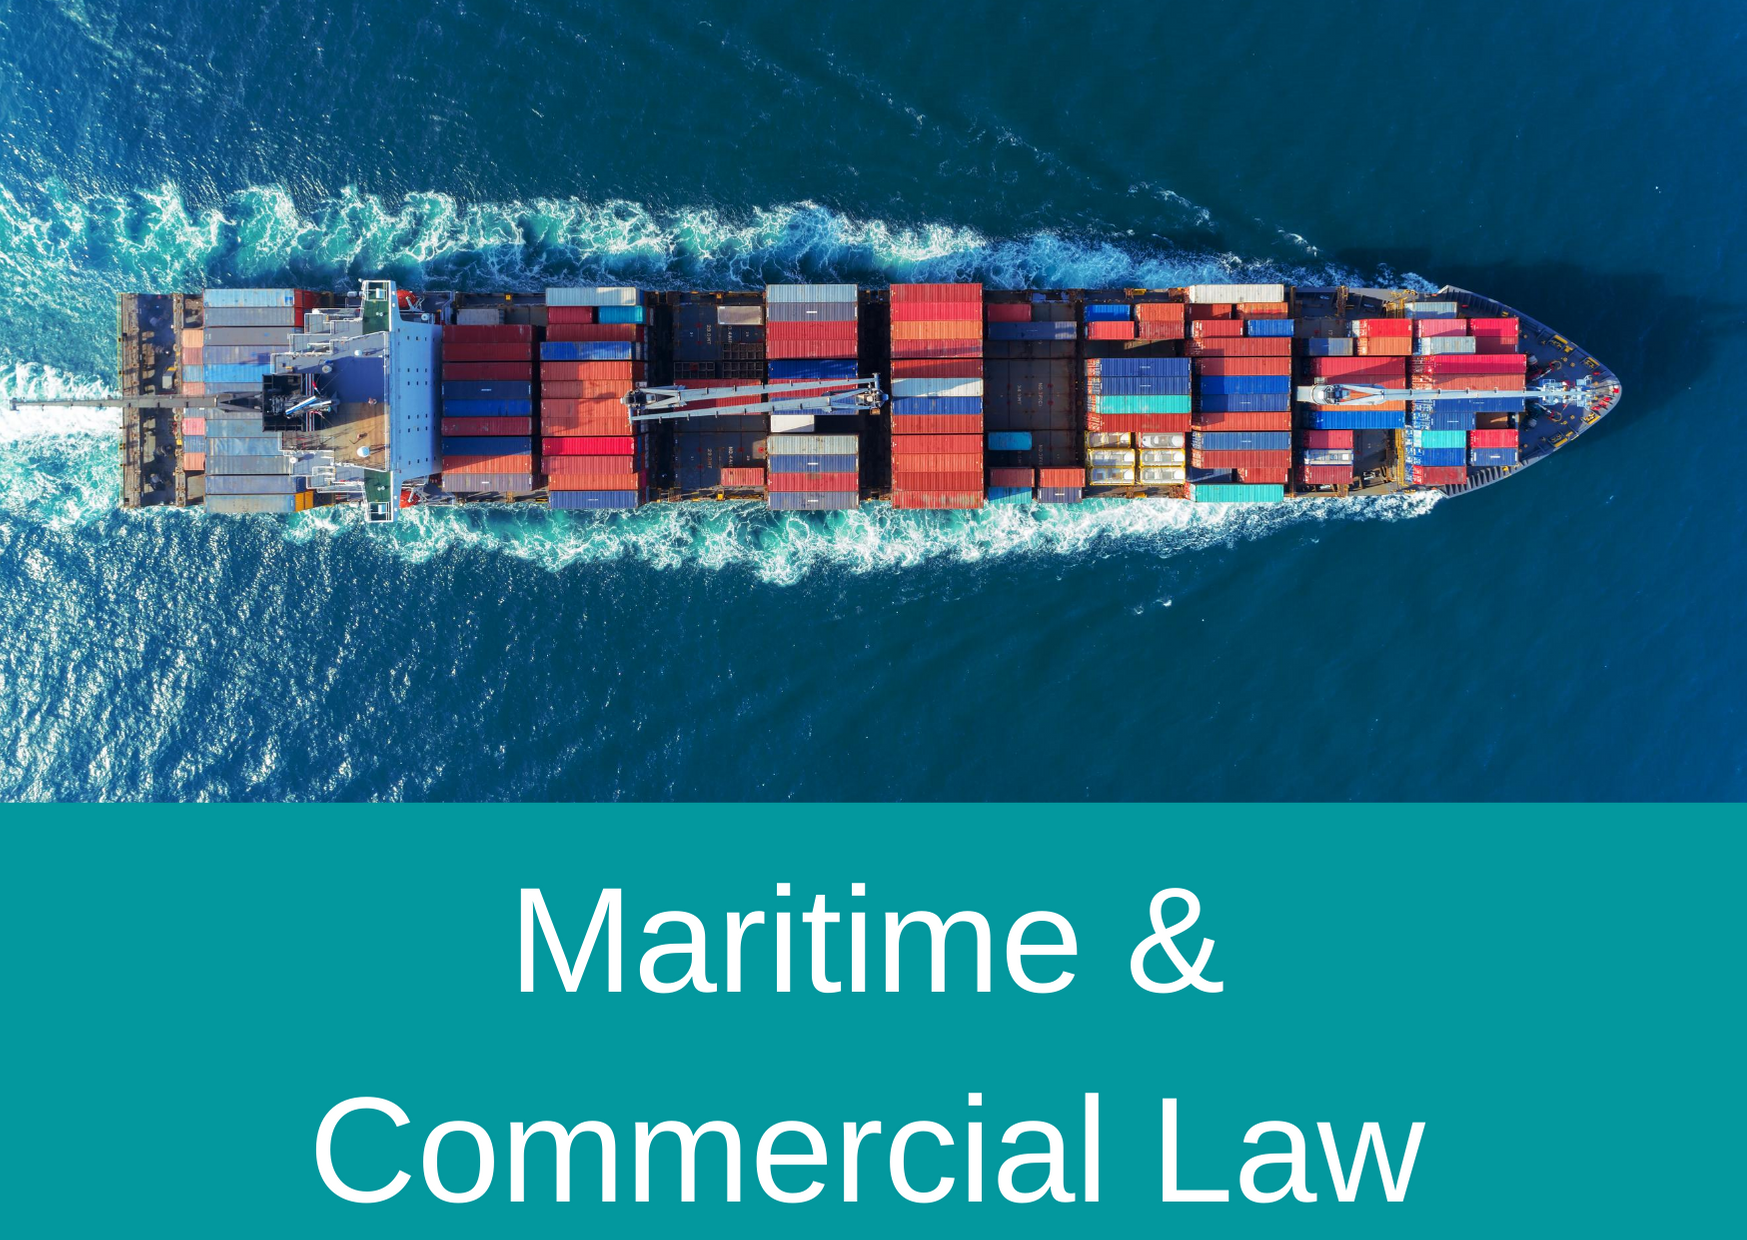 Maritime and Commercial Law